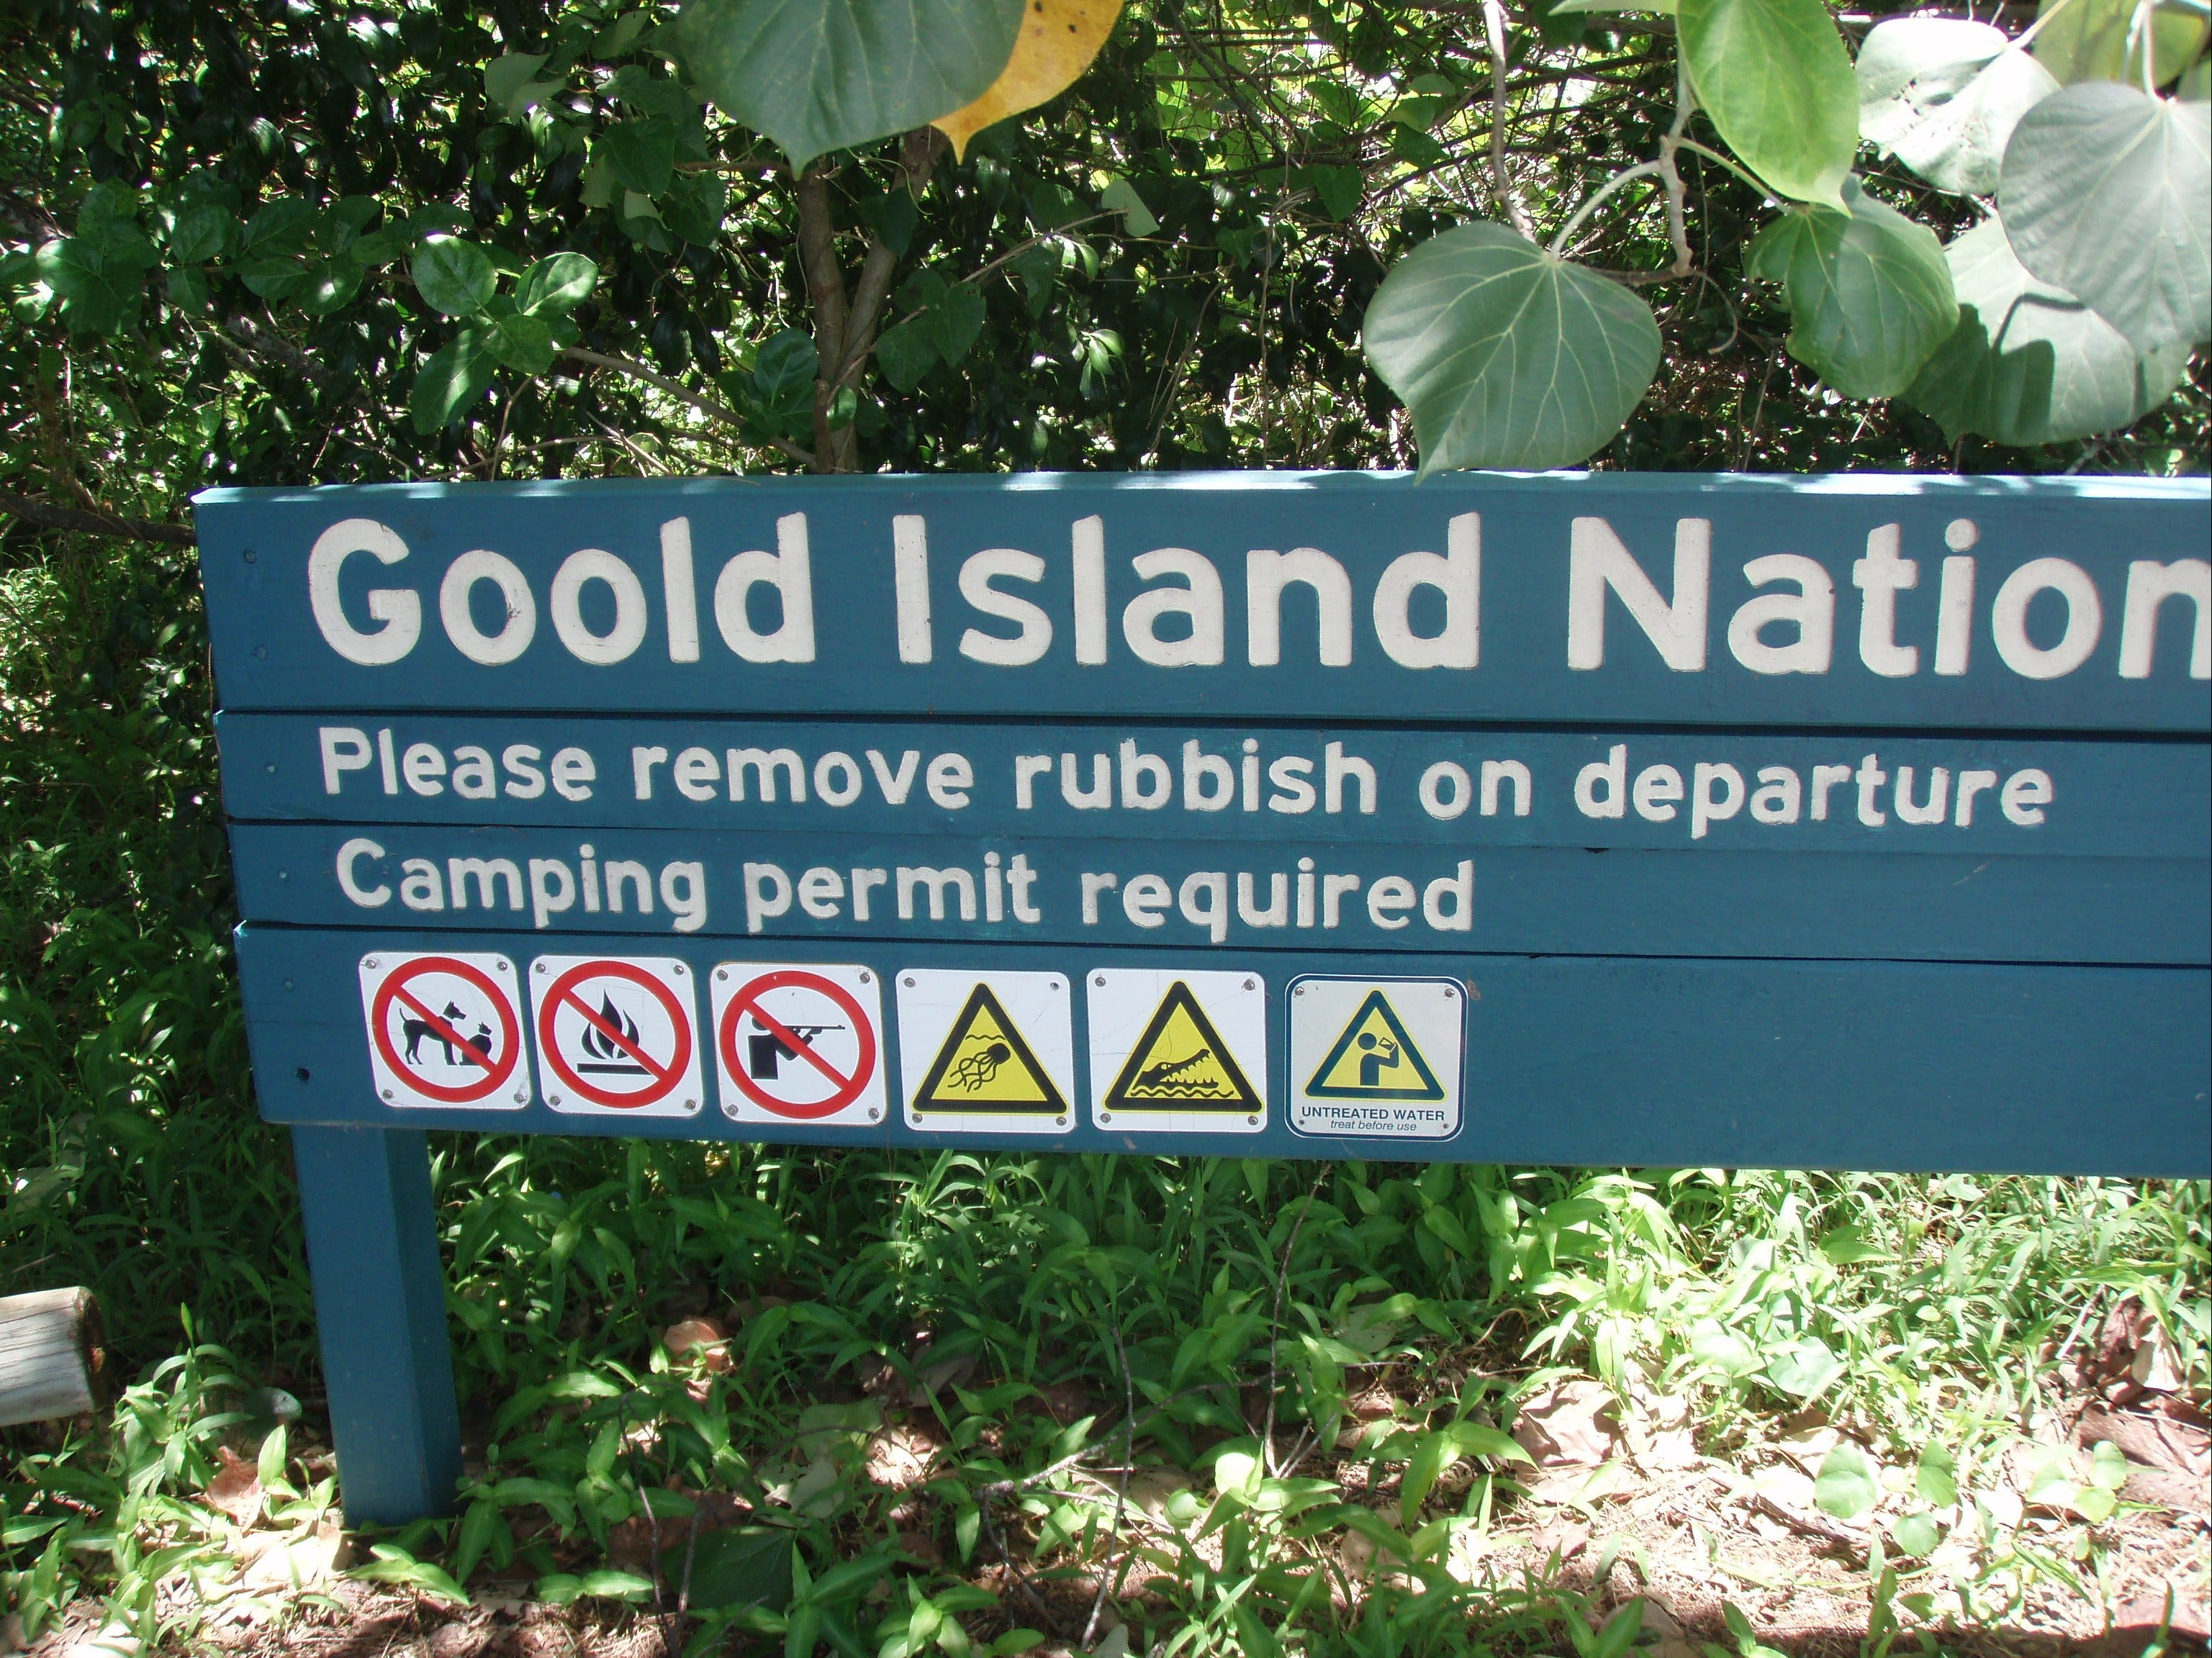 Goold Island National Park - Tourism Gold Coast